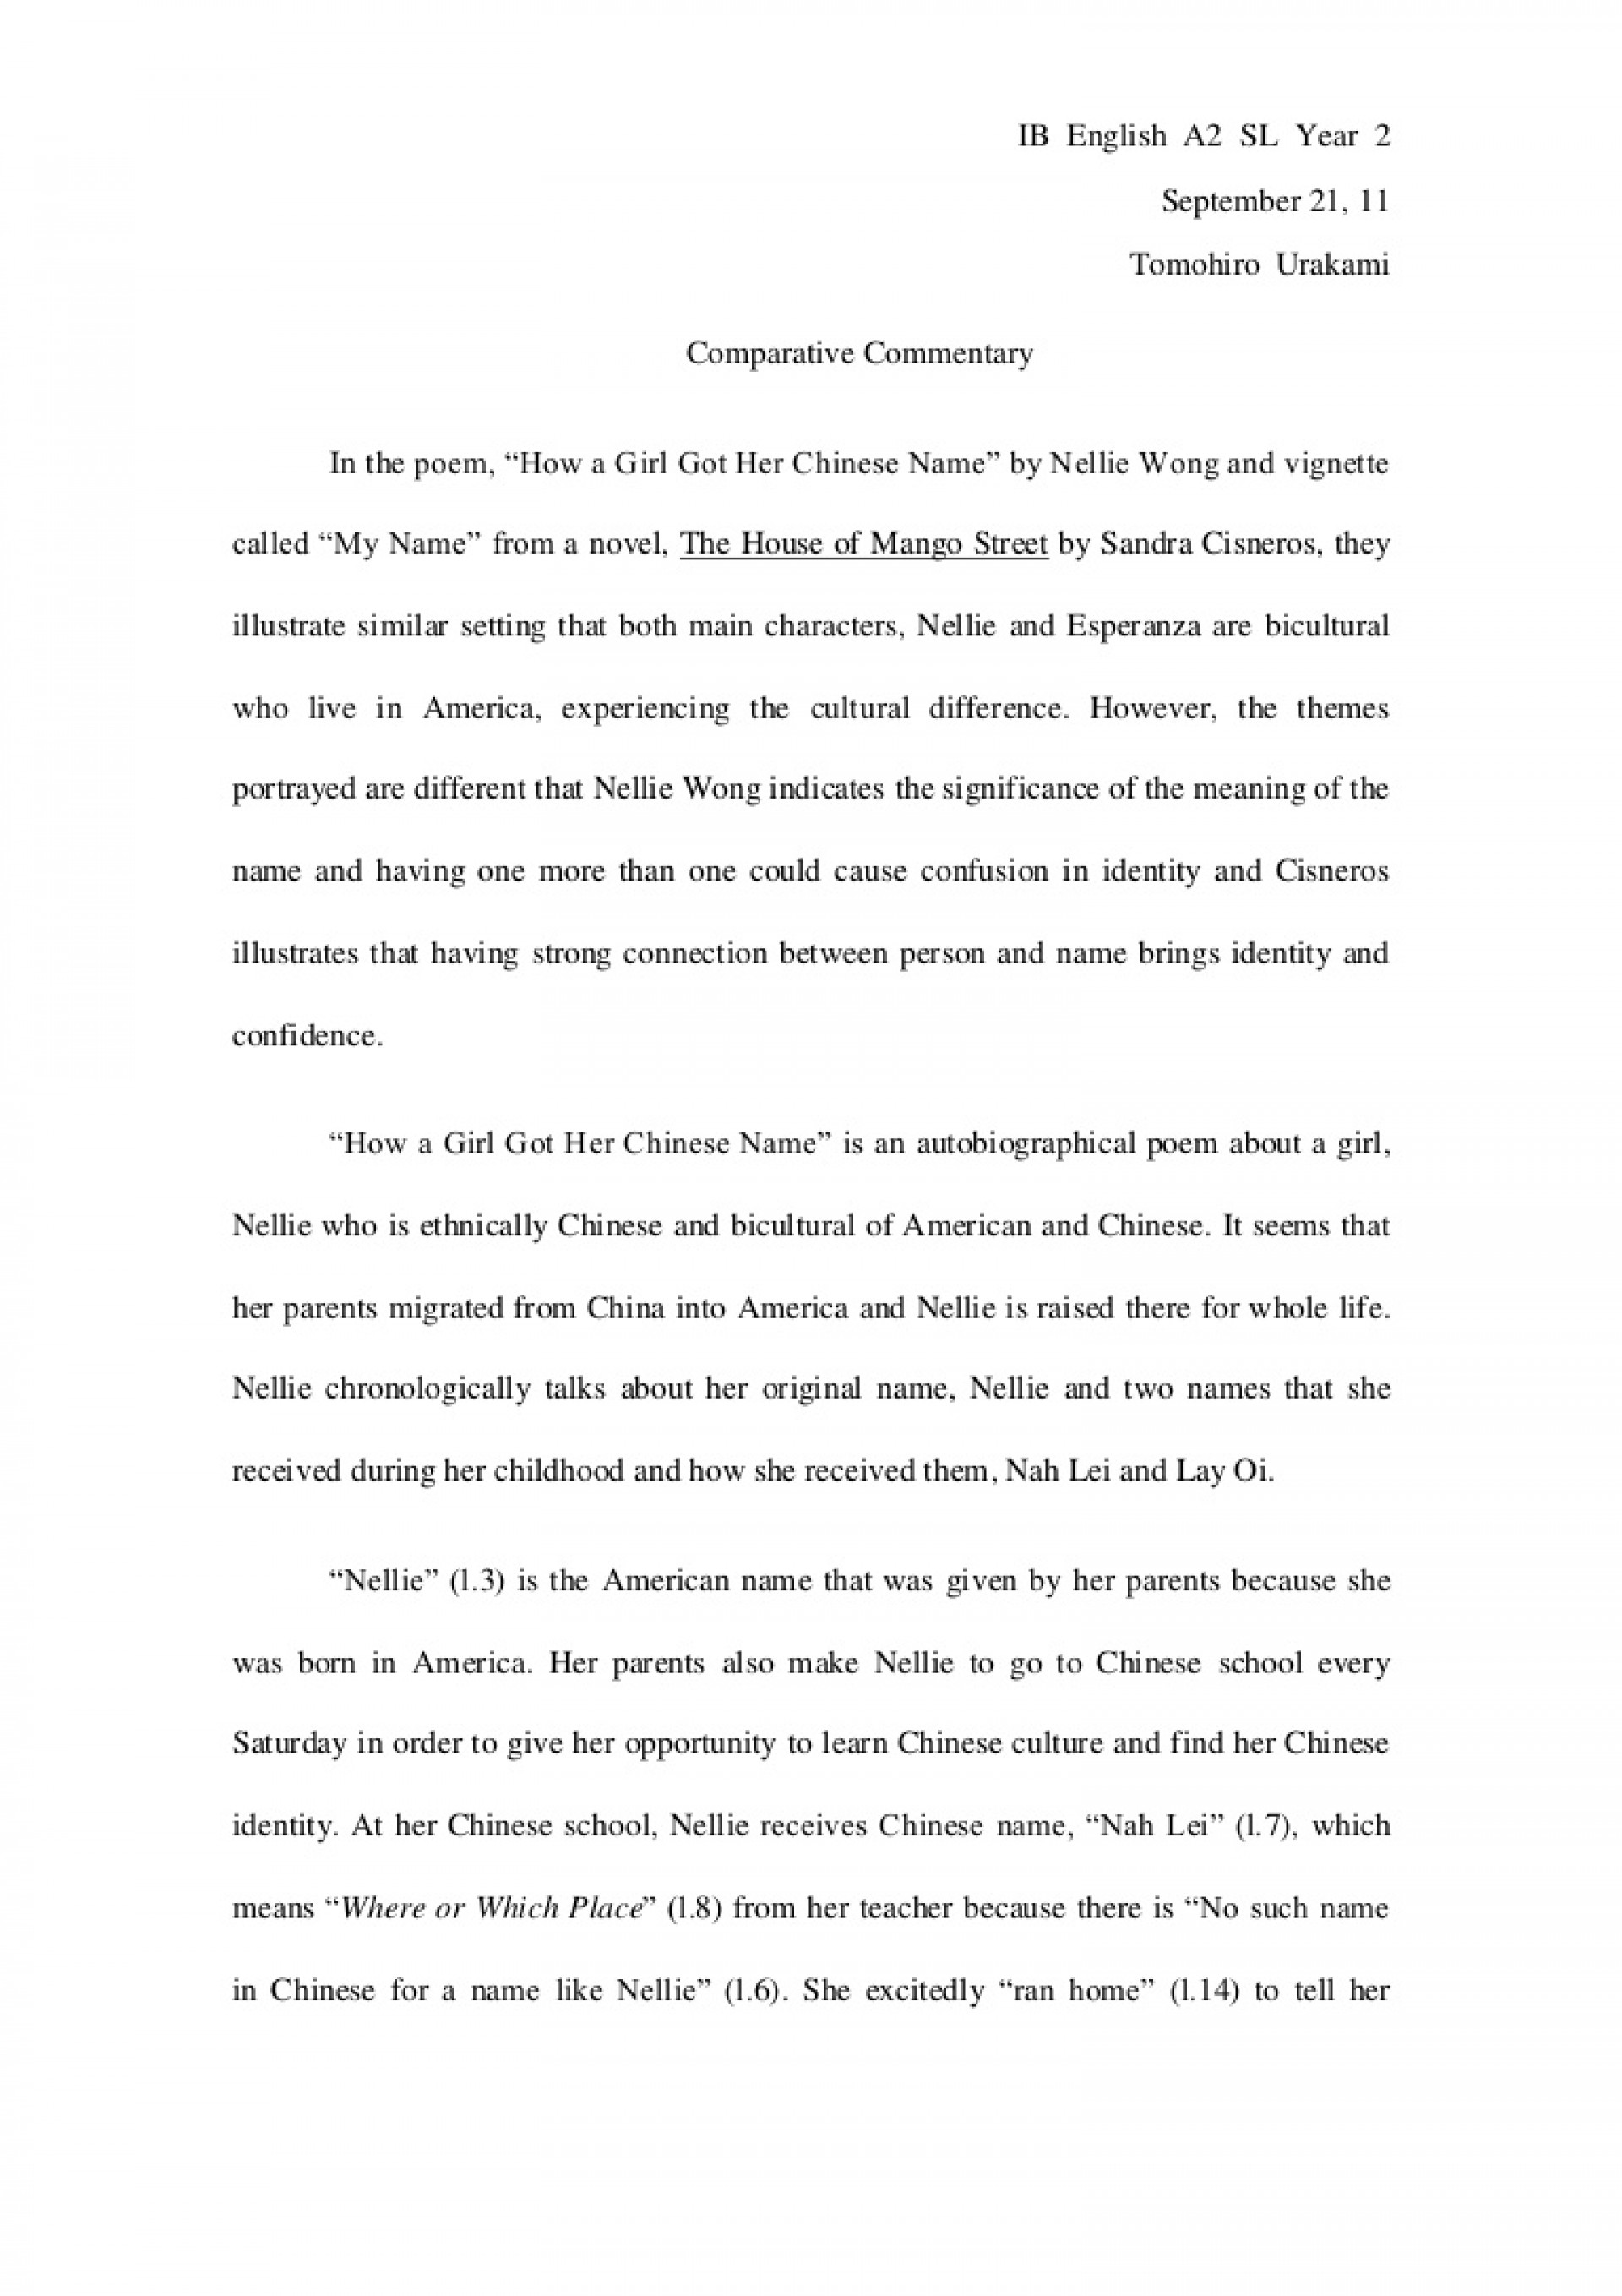 008 Compare And Contrast Essays Comparativeessaydraft Phpapp02 Thumbnail Magnificent Essay Examples 3rd Grade 4th Topics 1920